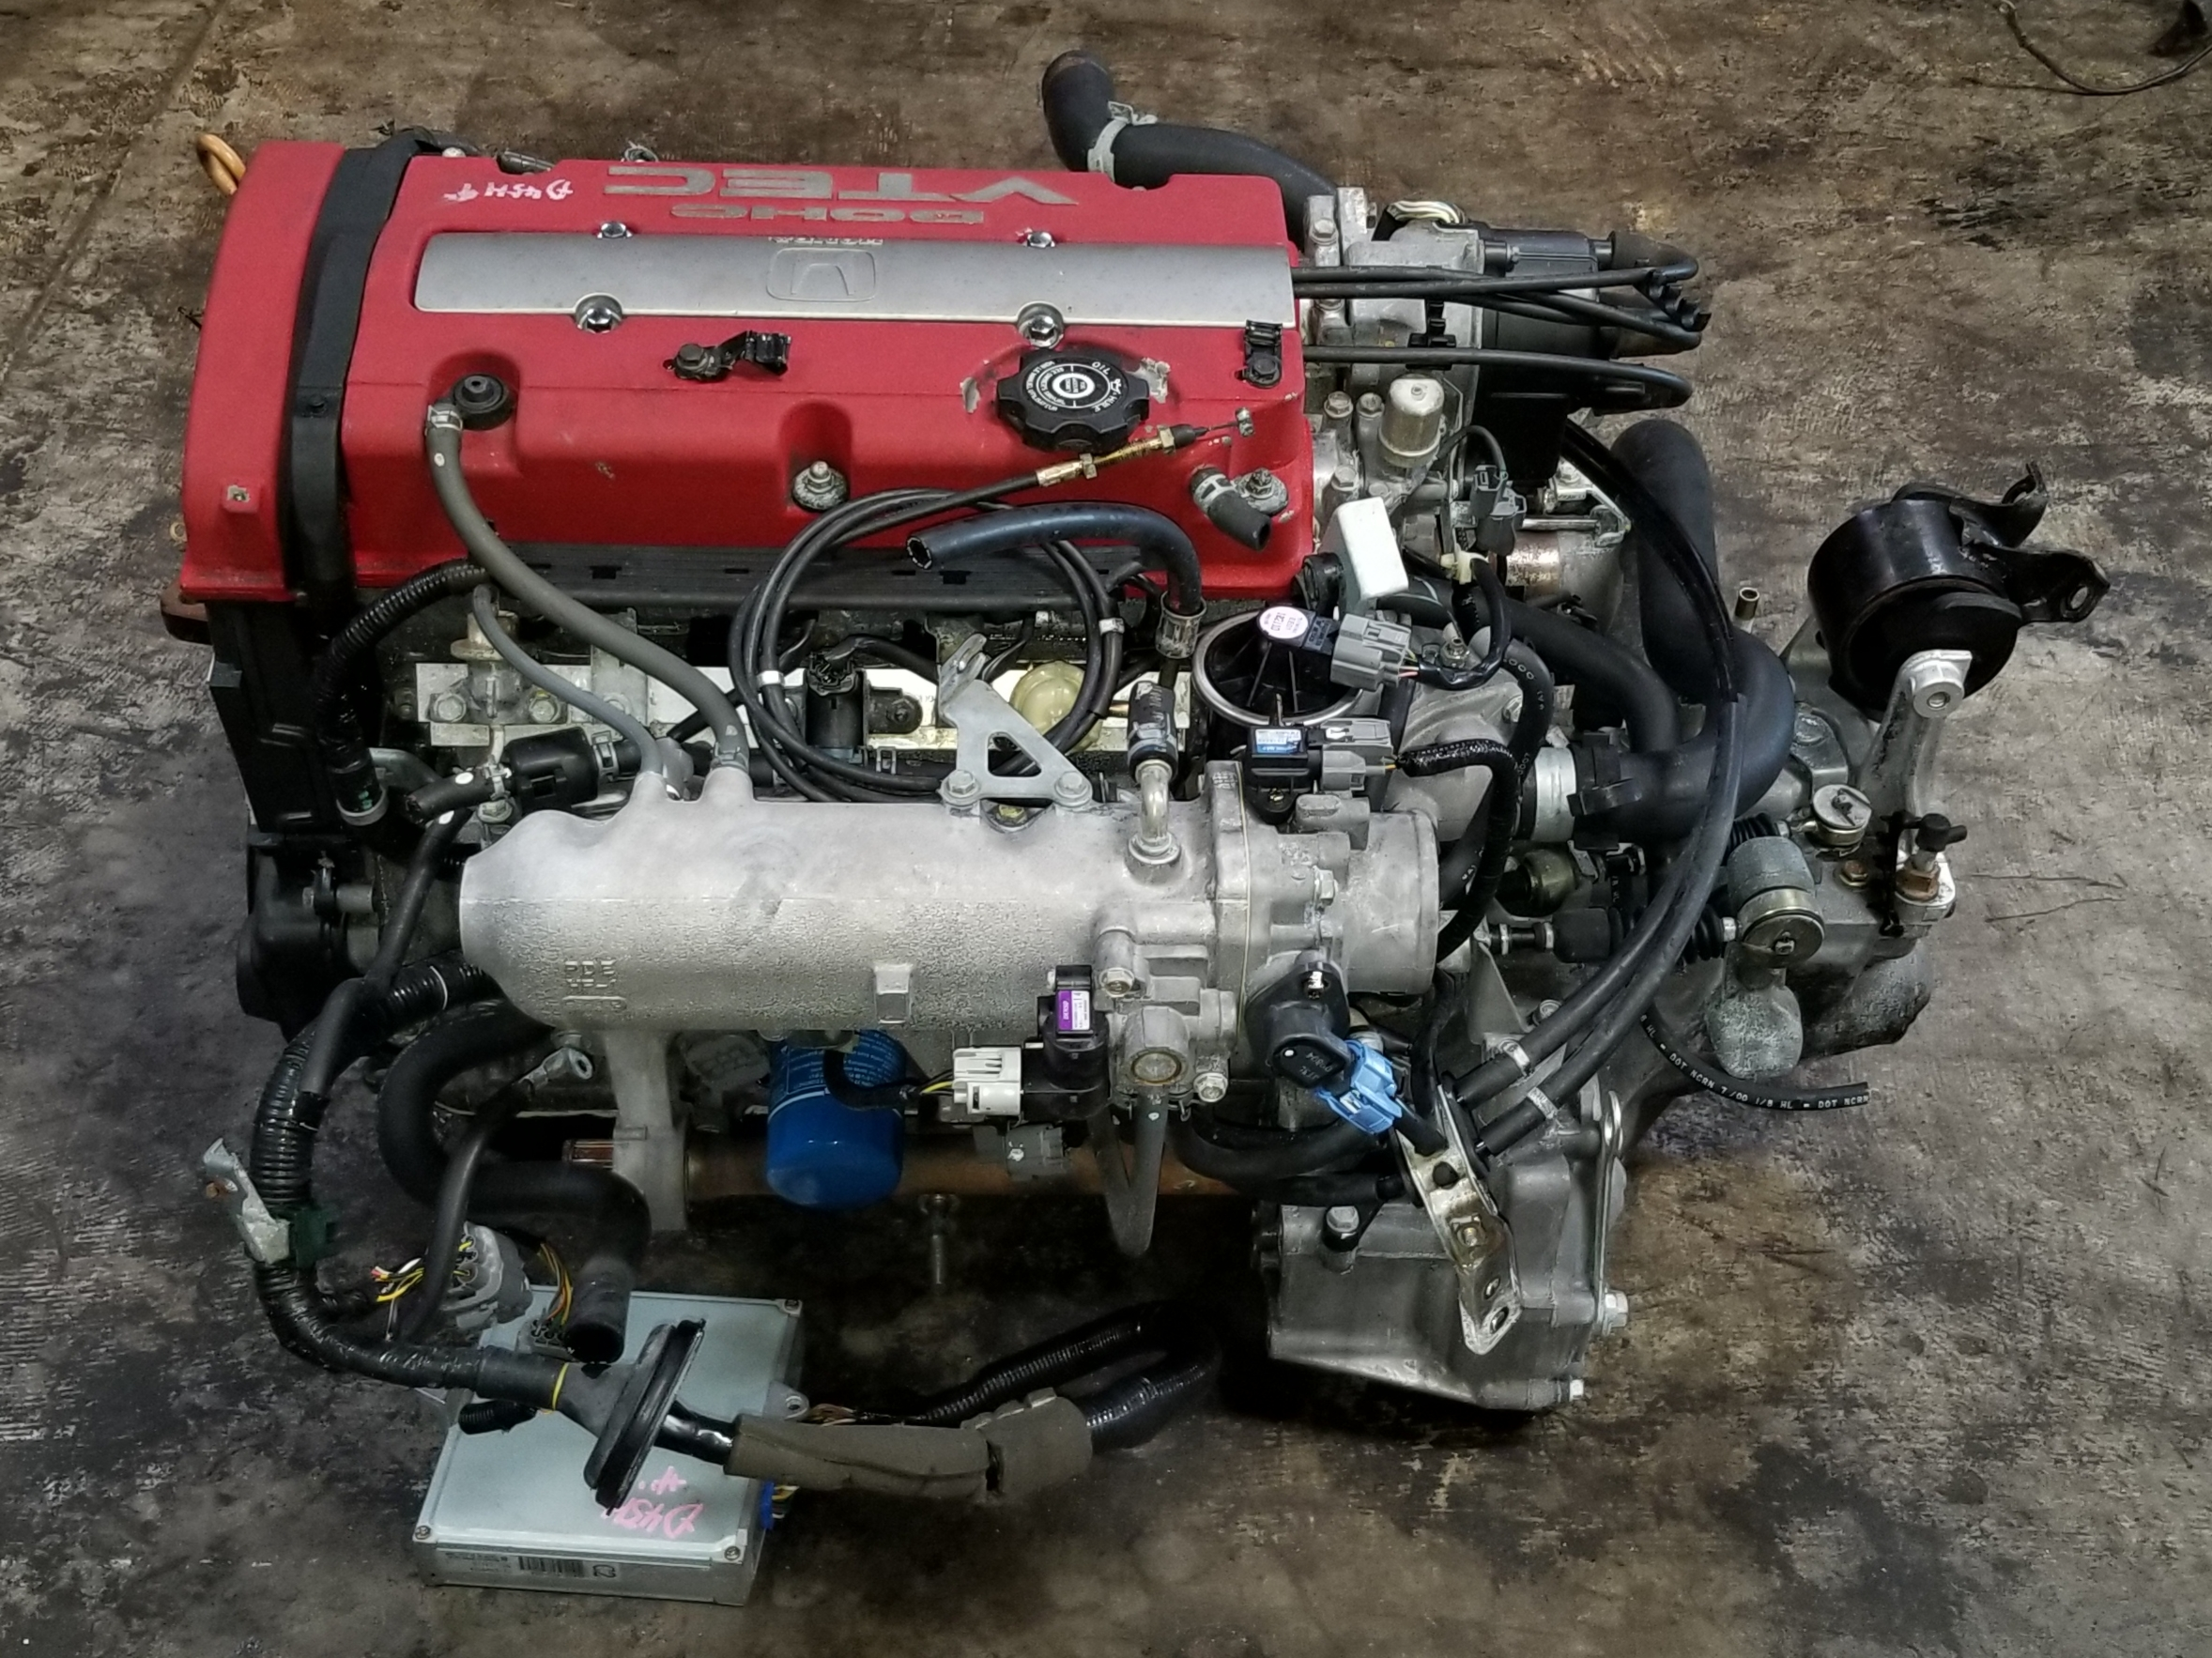 H22A 1997 2001 Honda Accord Prelude 2.2L Euro-R VTEC Engine with T2W4 H A Engine Wiring Harness on dodge sprinter engine harness, suspension harness, oem engine wire harness, hoist harness, engine harmonic balancer, engine control module, bmw 2 8 engine wire harness,